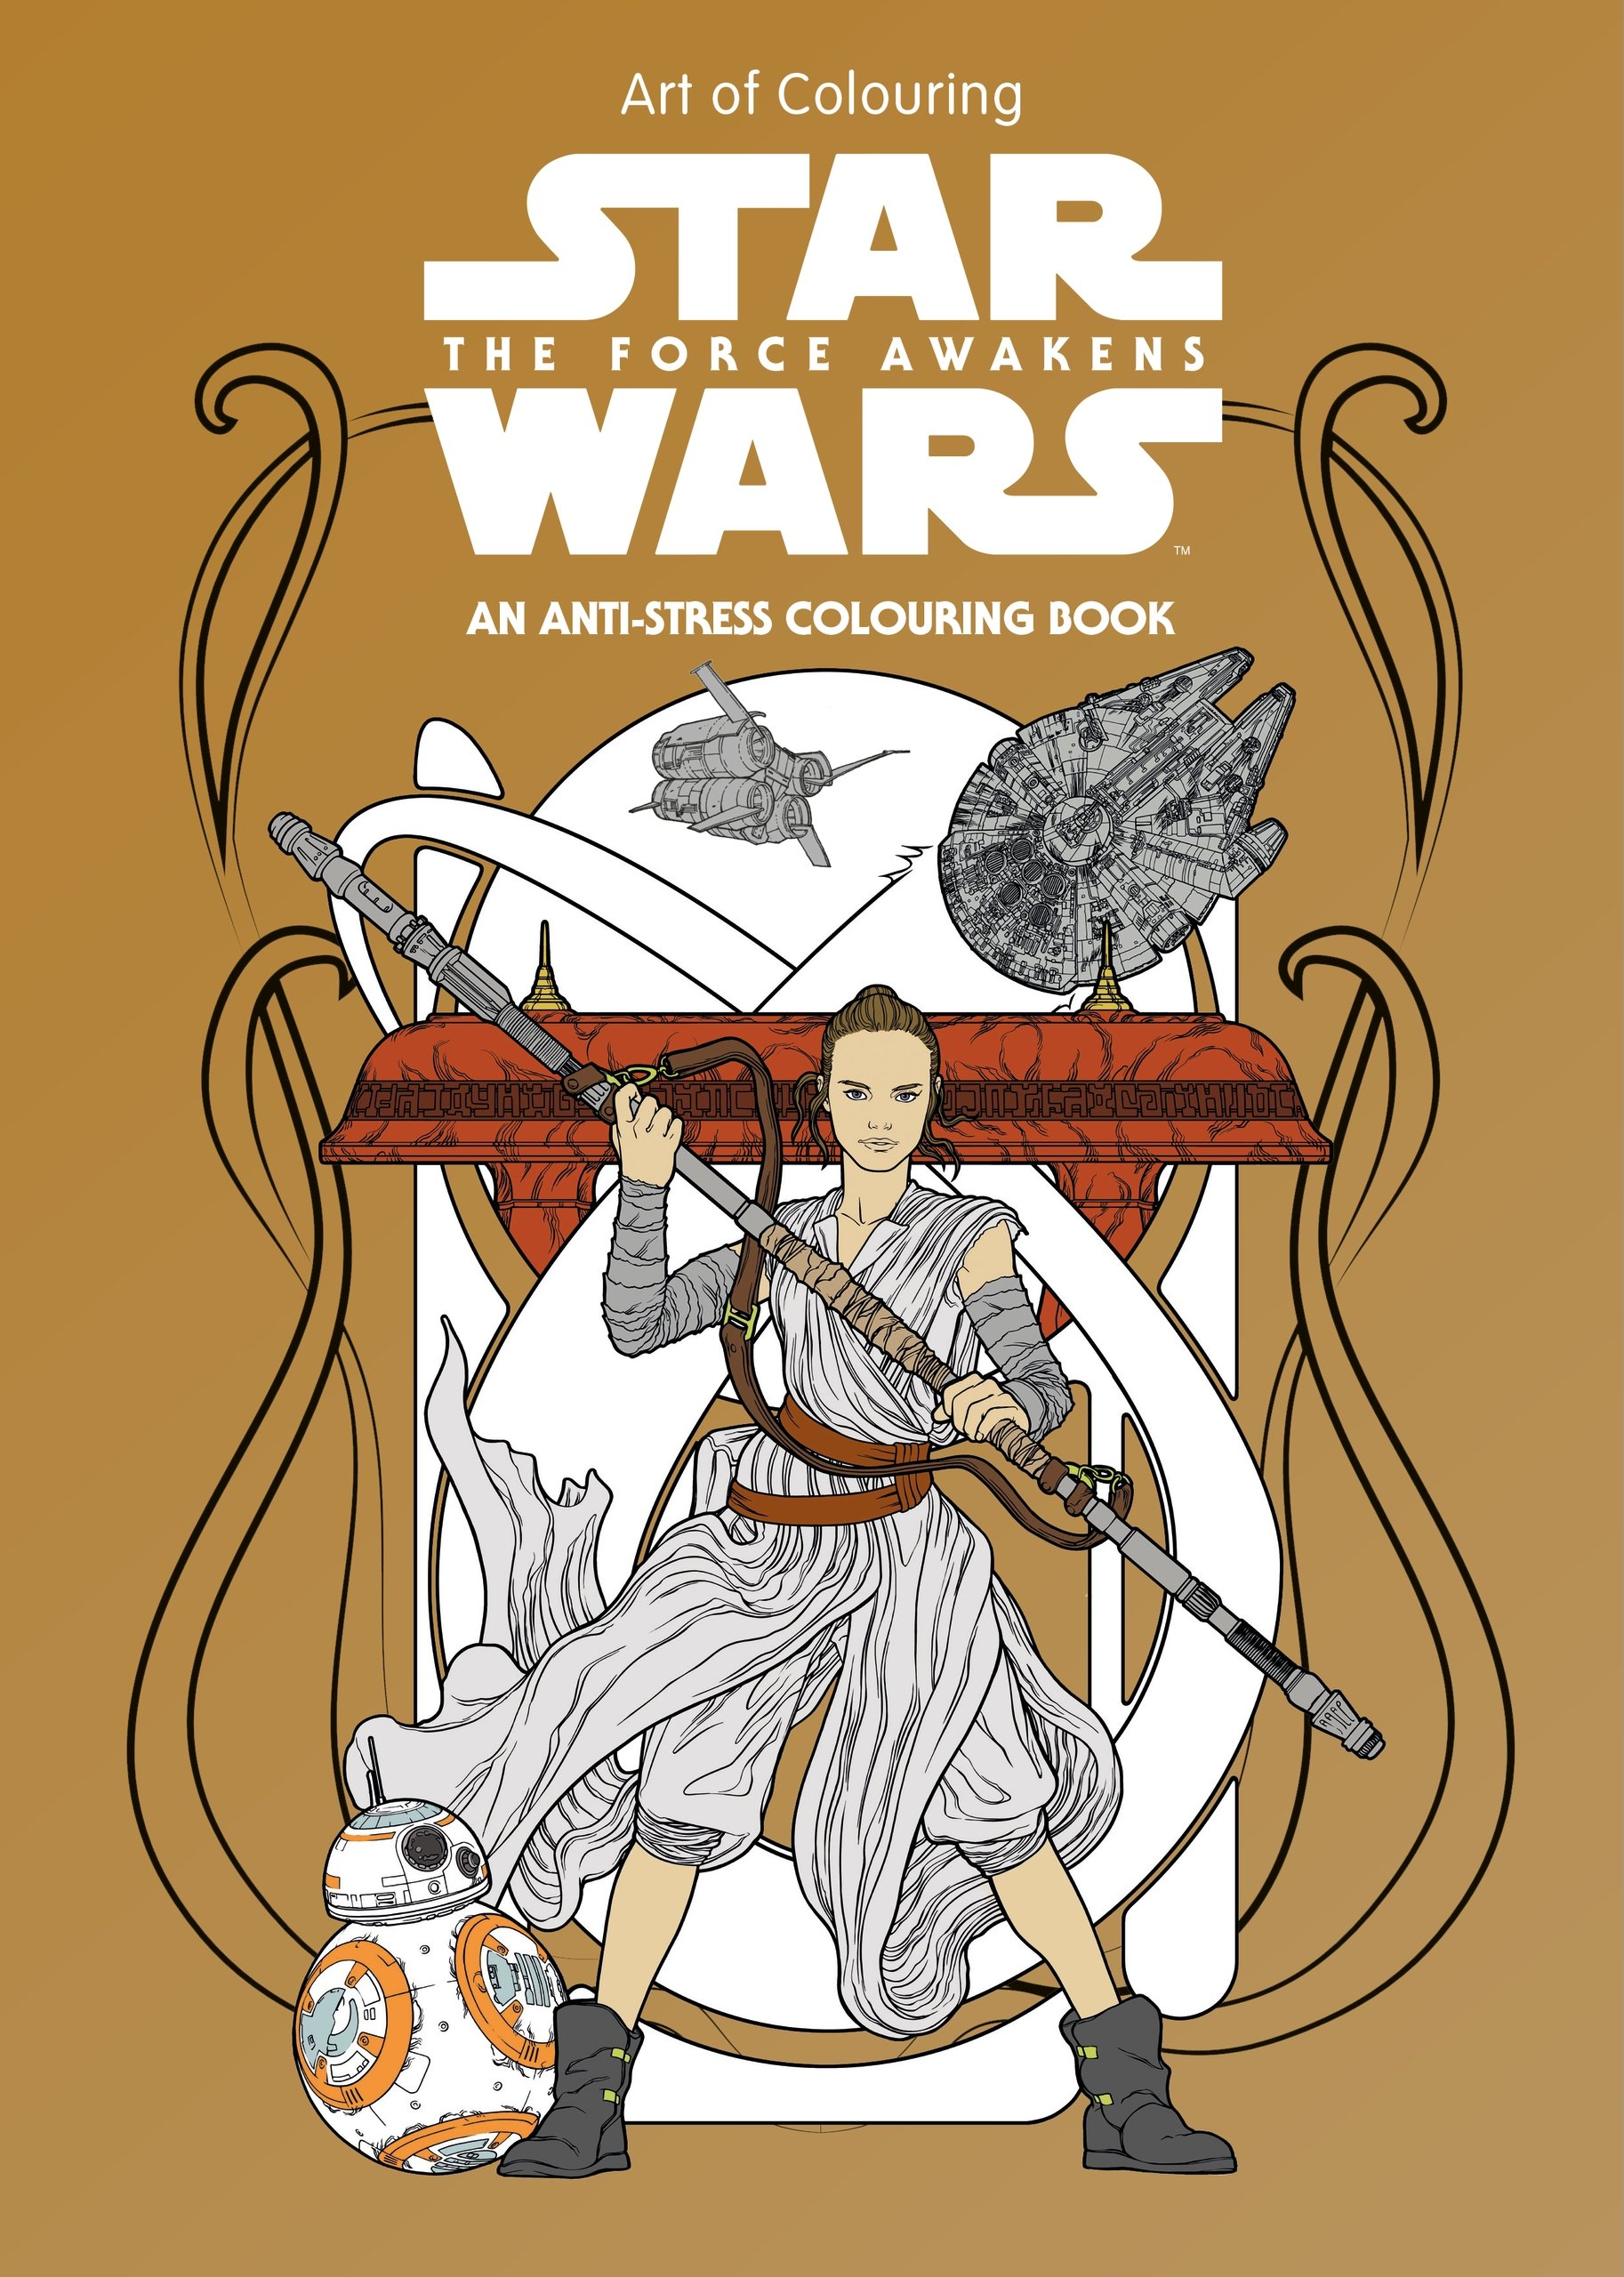 Art of Coloring Star Wars: The Force Awakens